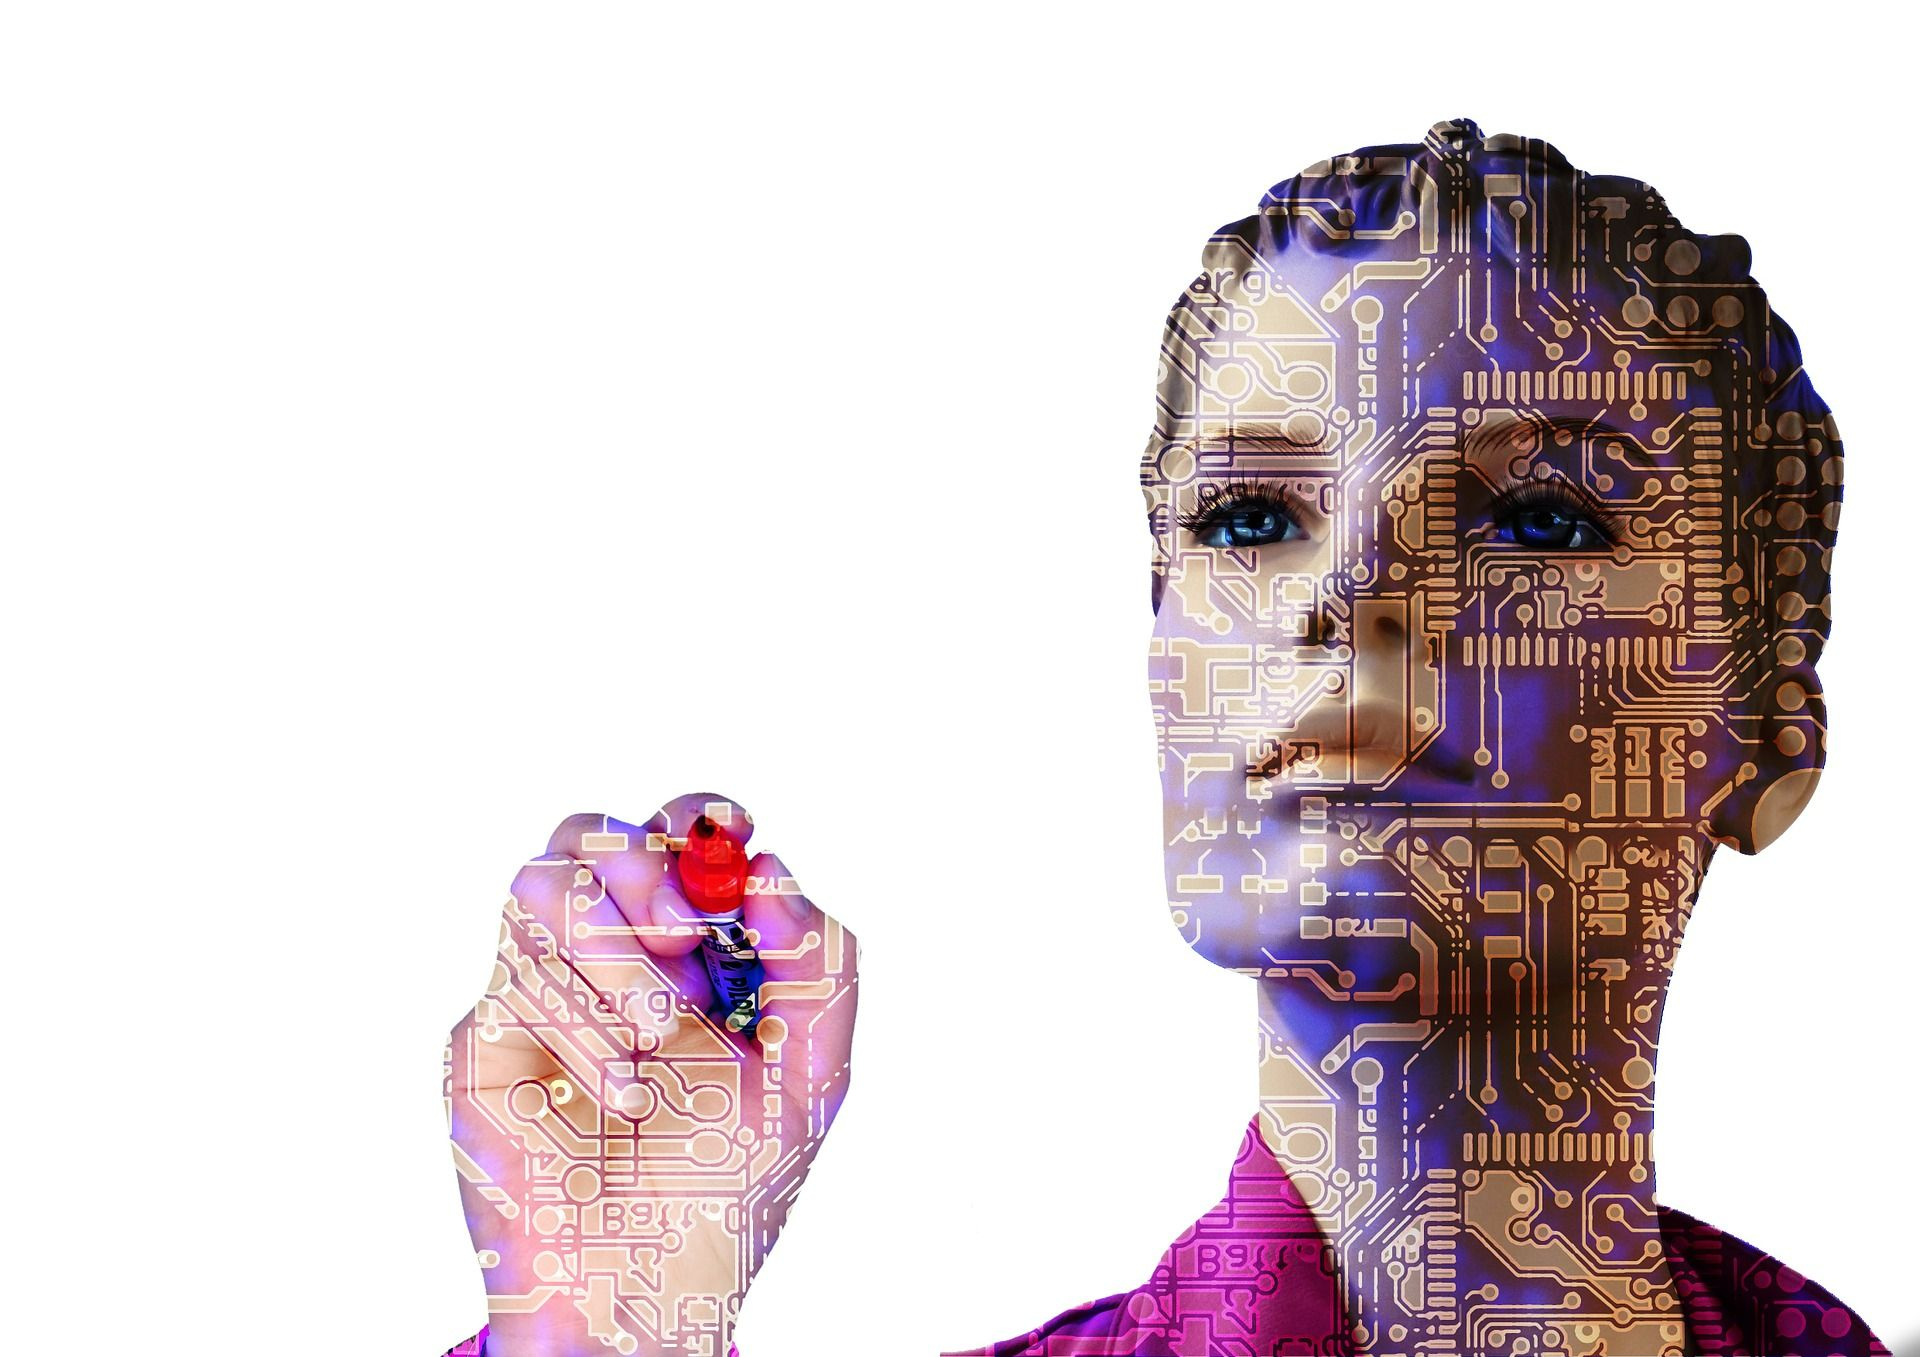 Top 10 AI Trends to Watch in 2021